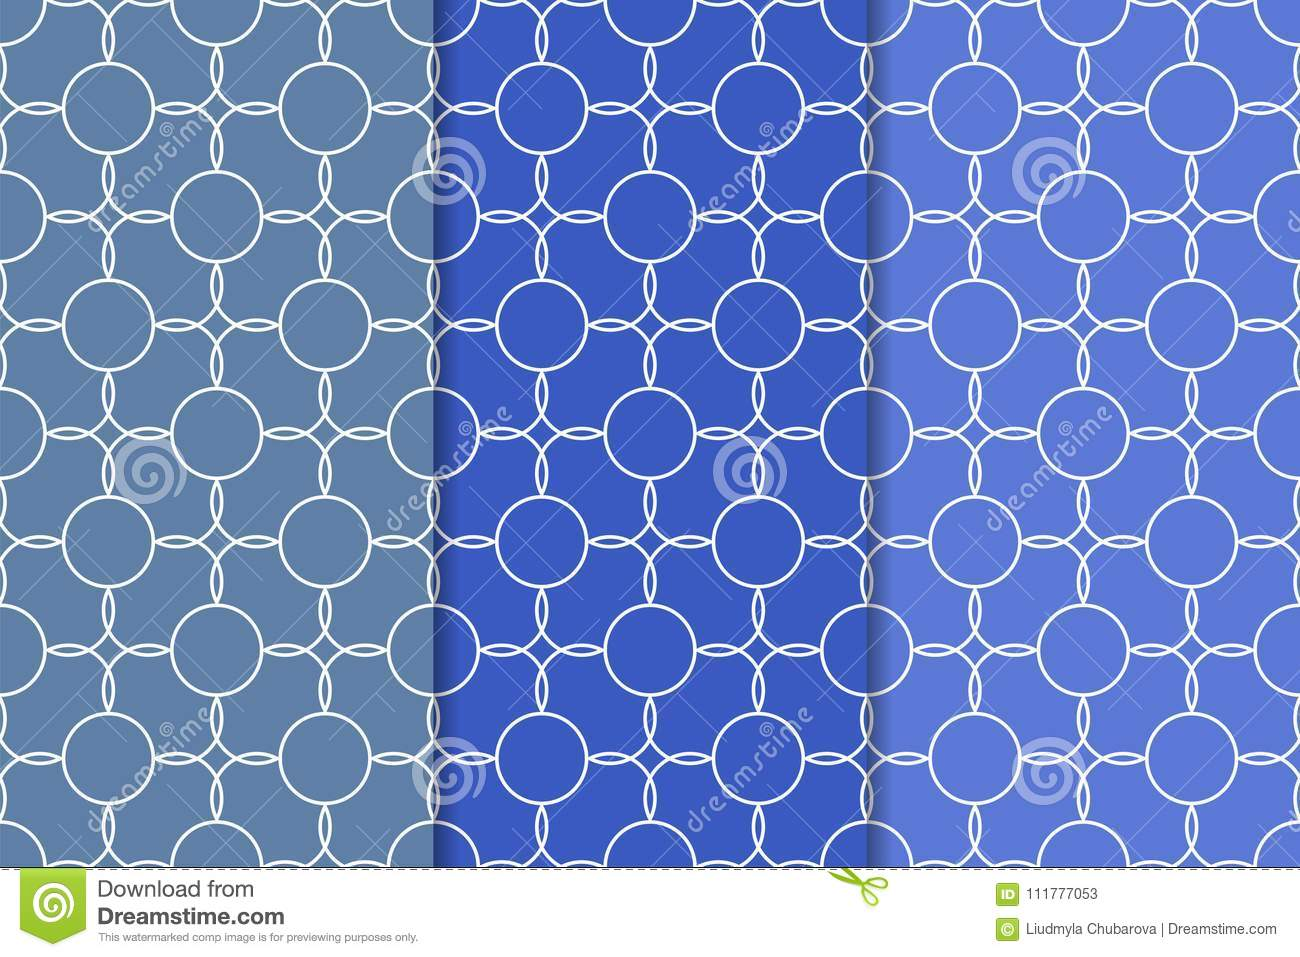 Set of geometric ornaments. Blue seamless patterns